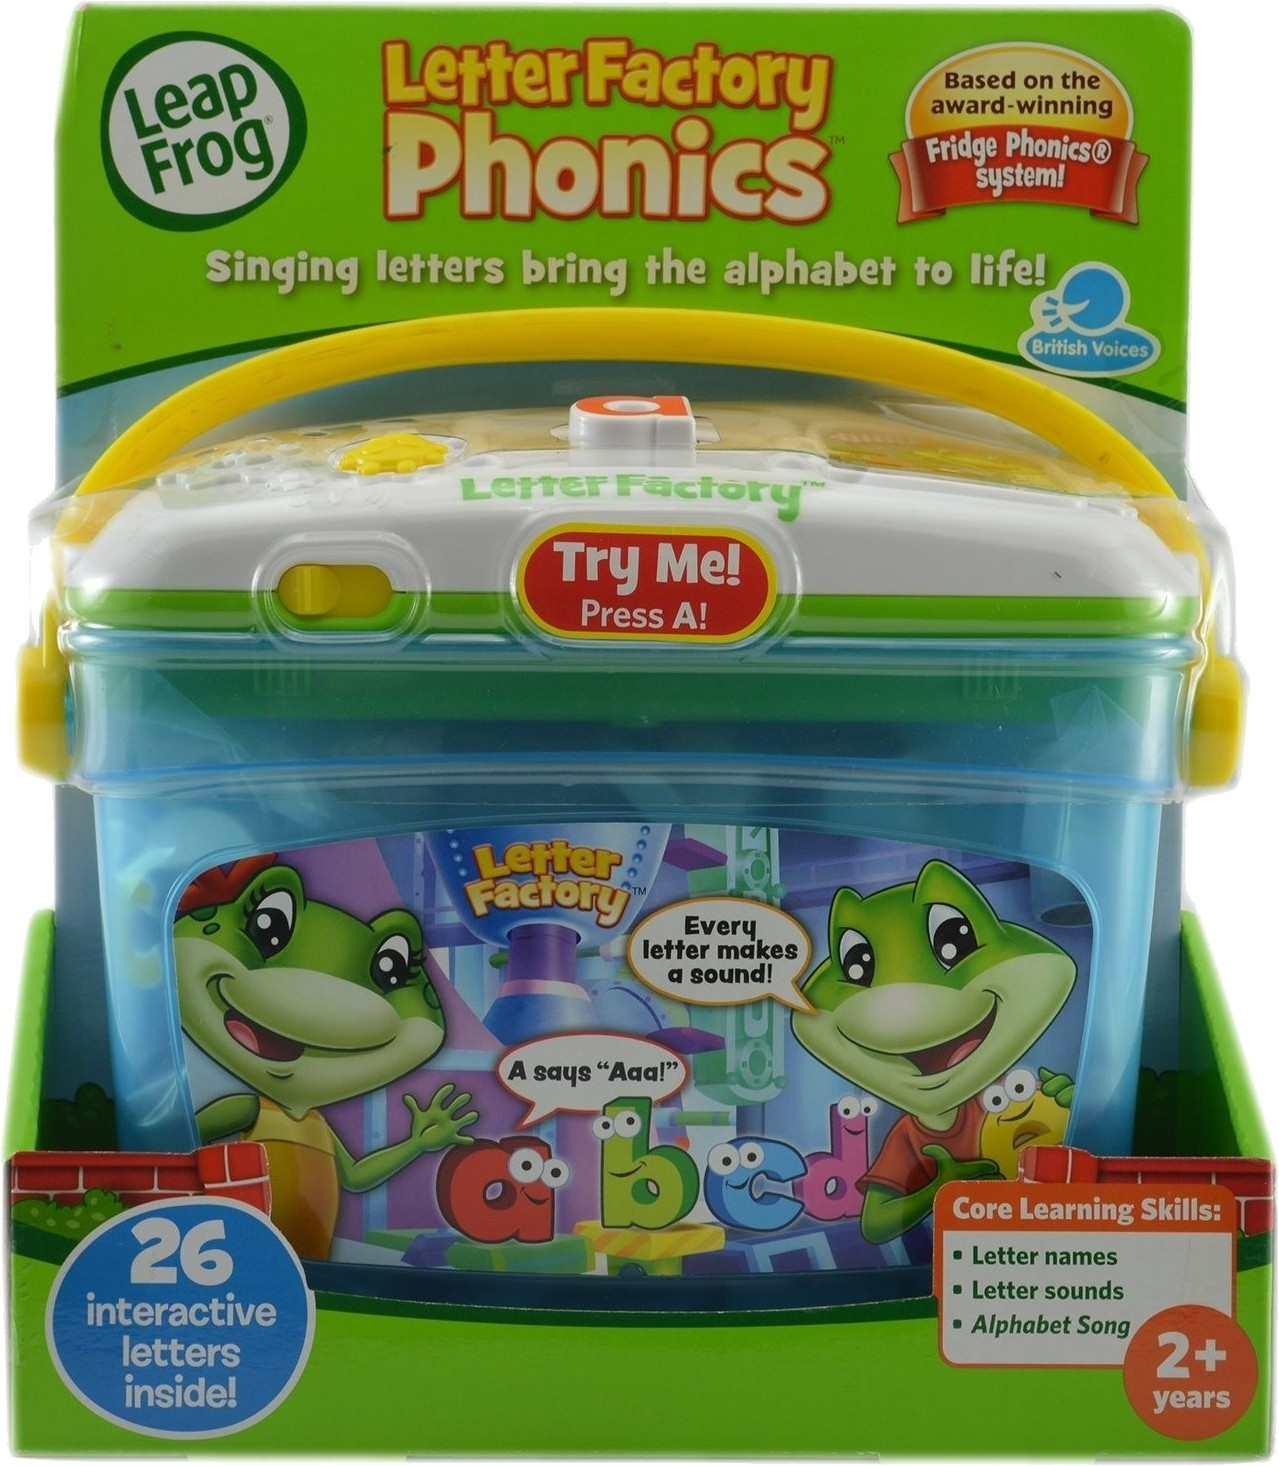 Download Free The Phonics Factory Game